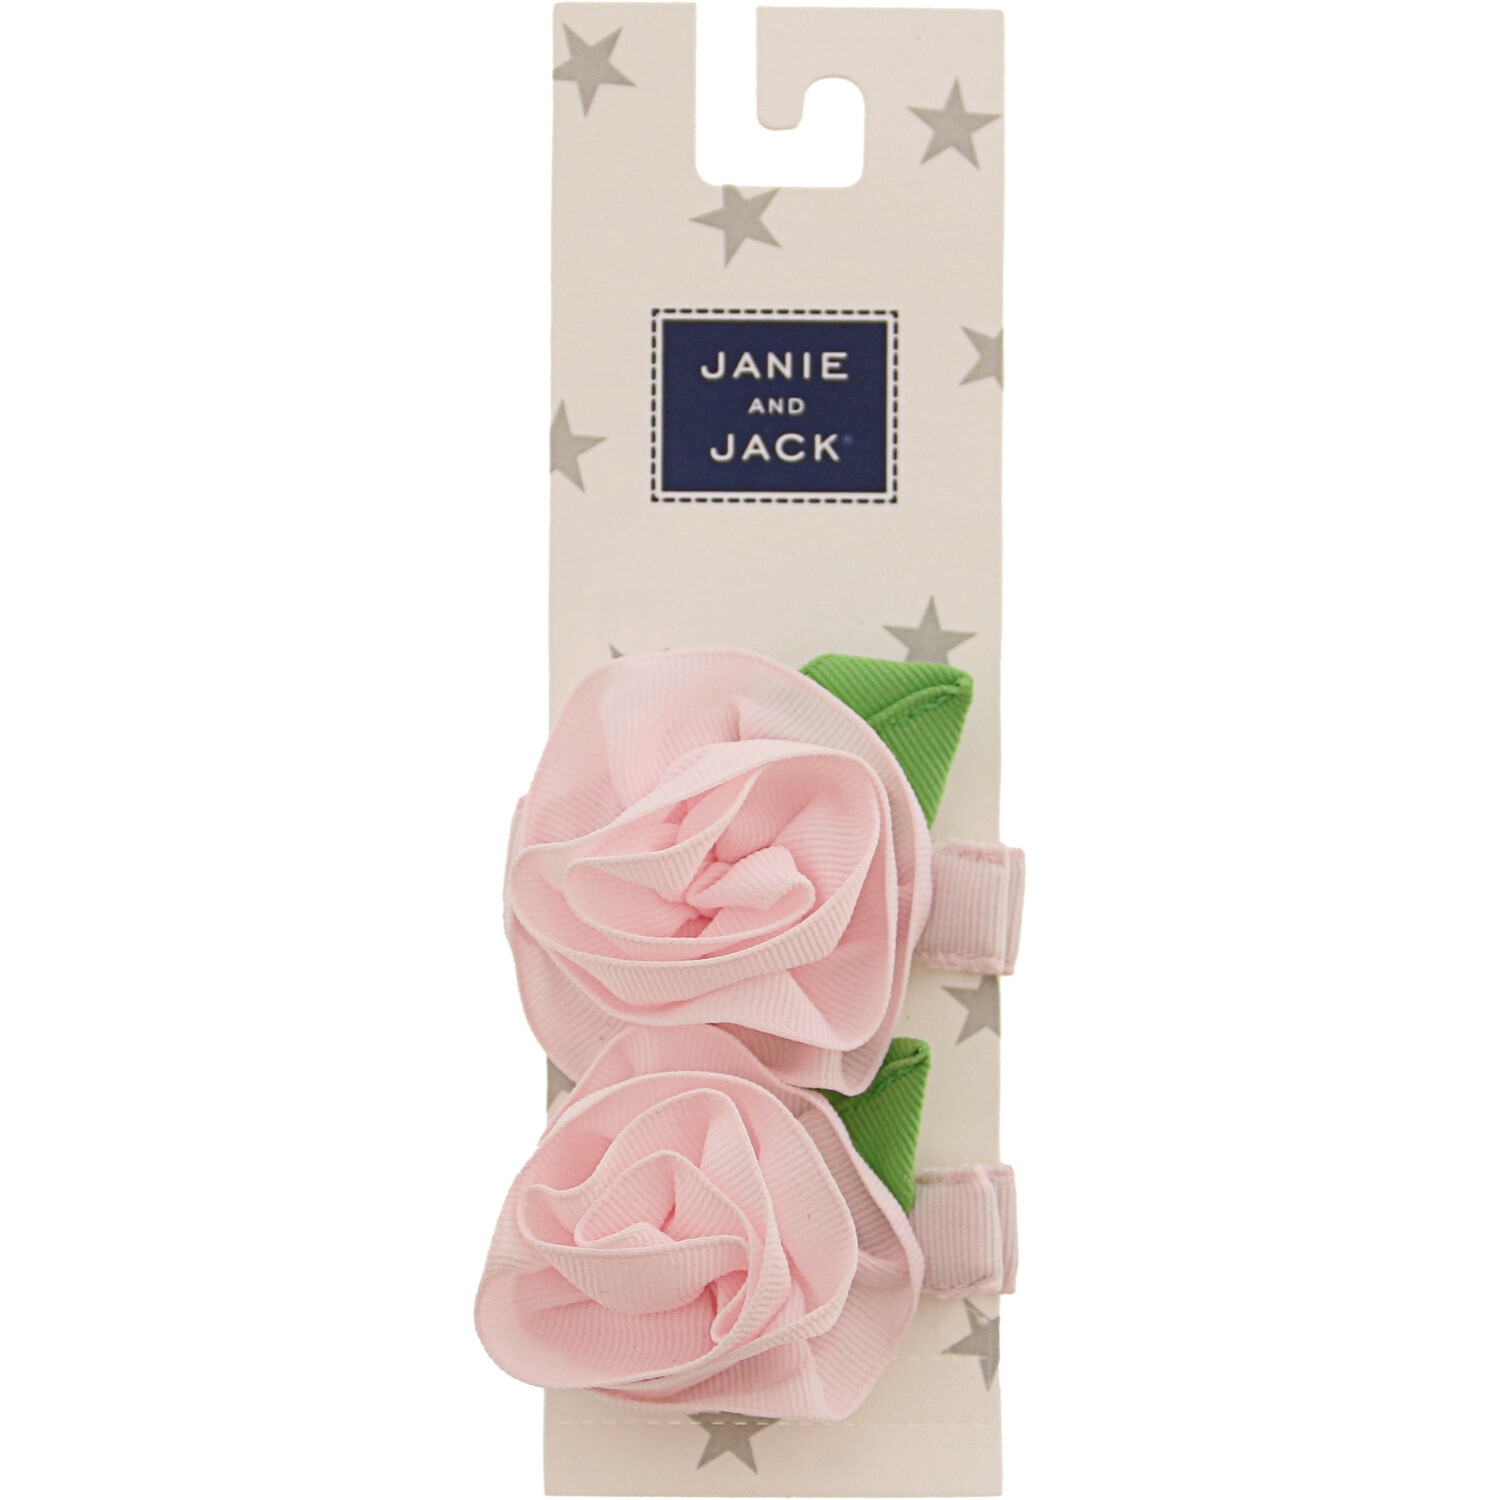 Janie And Jack Rosette Barrette Set - One Size - Pastel Pink